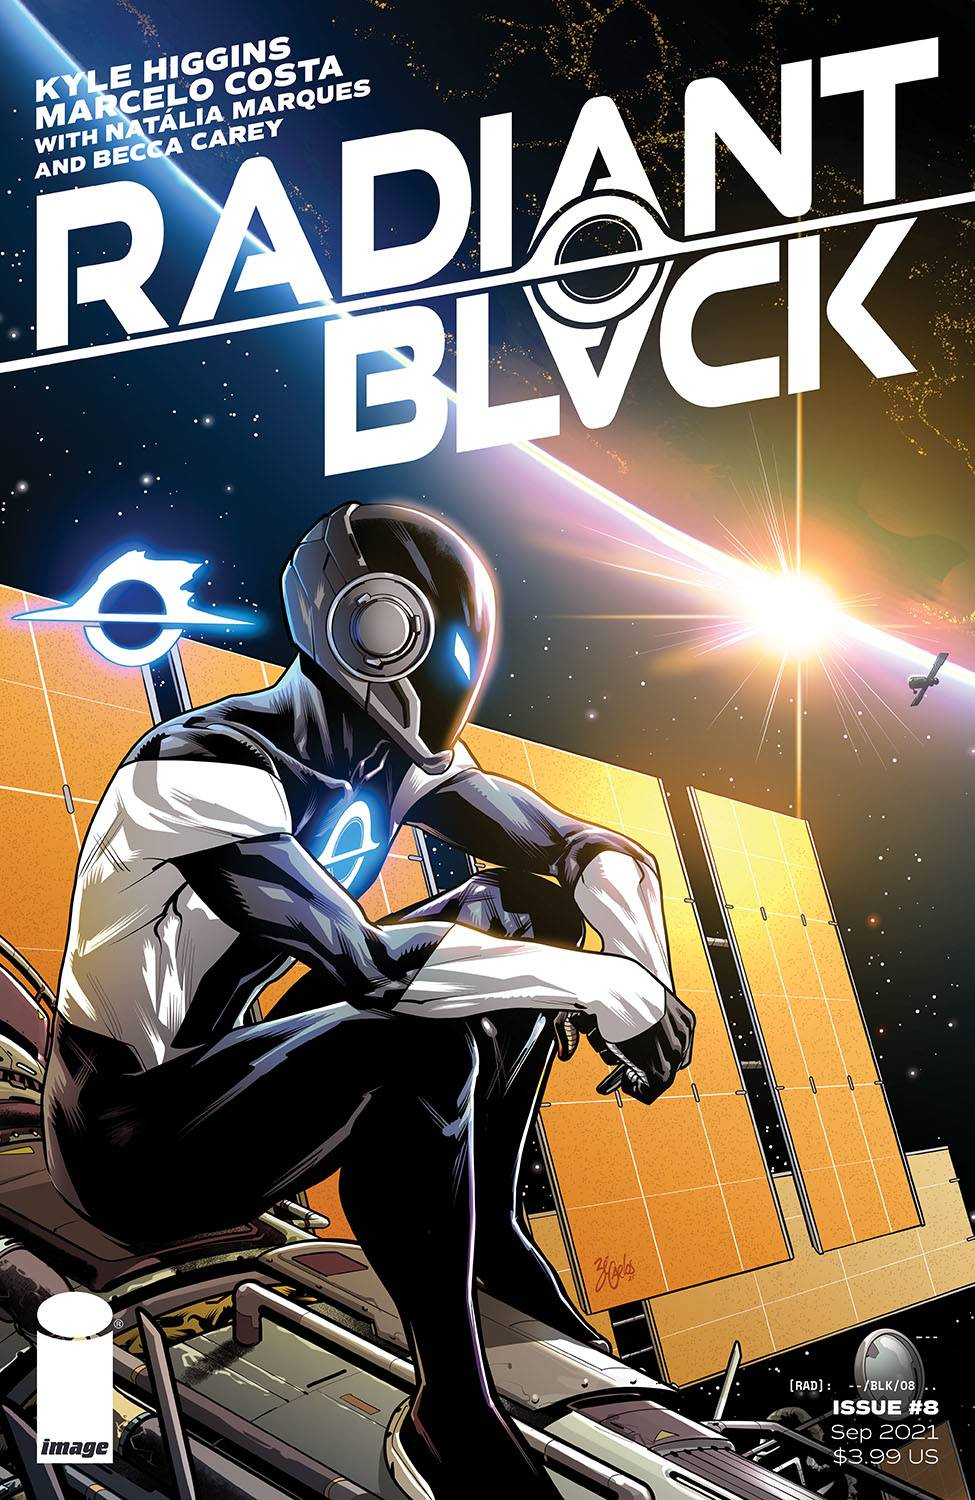 Radiant Black 8 spoilers 0 2 Recent Comic Cover Updates For 2021 10 04